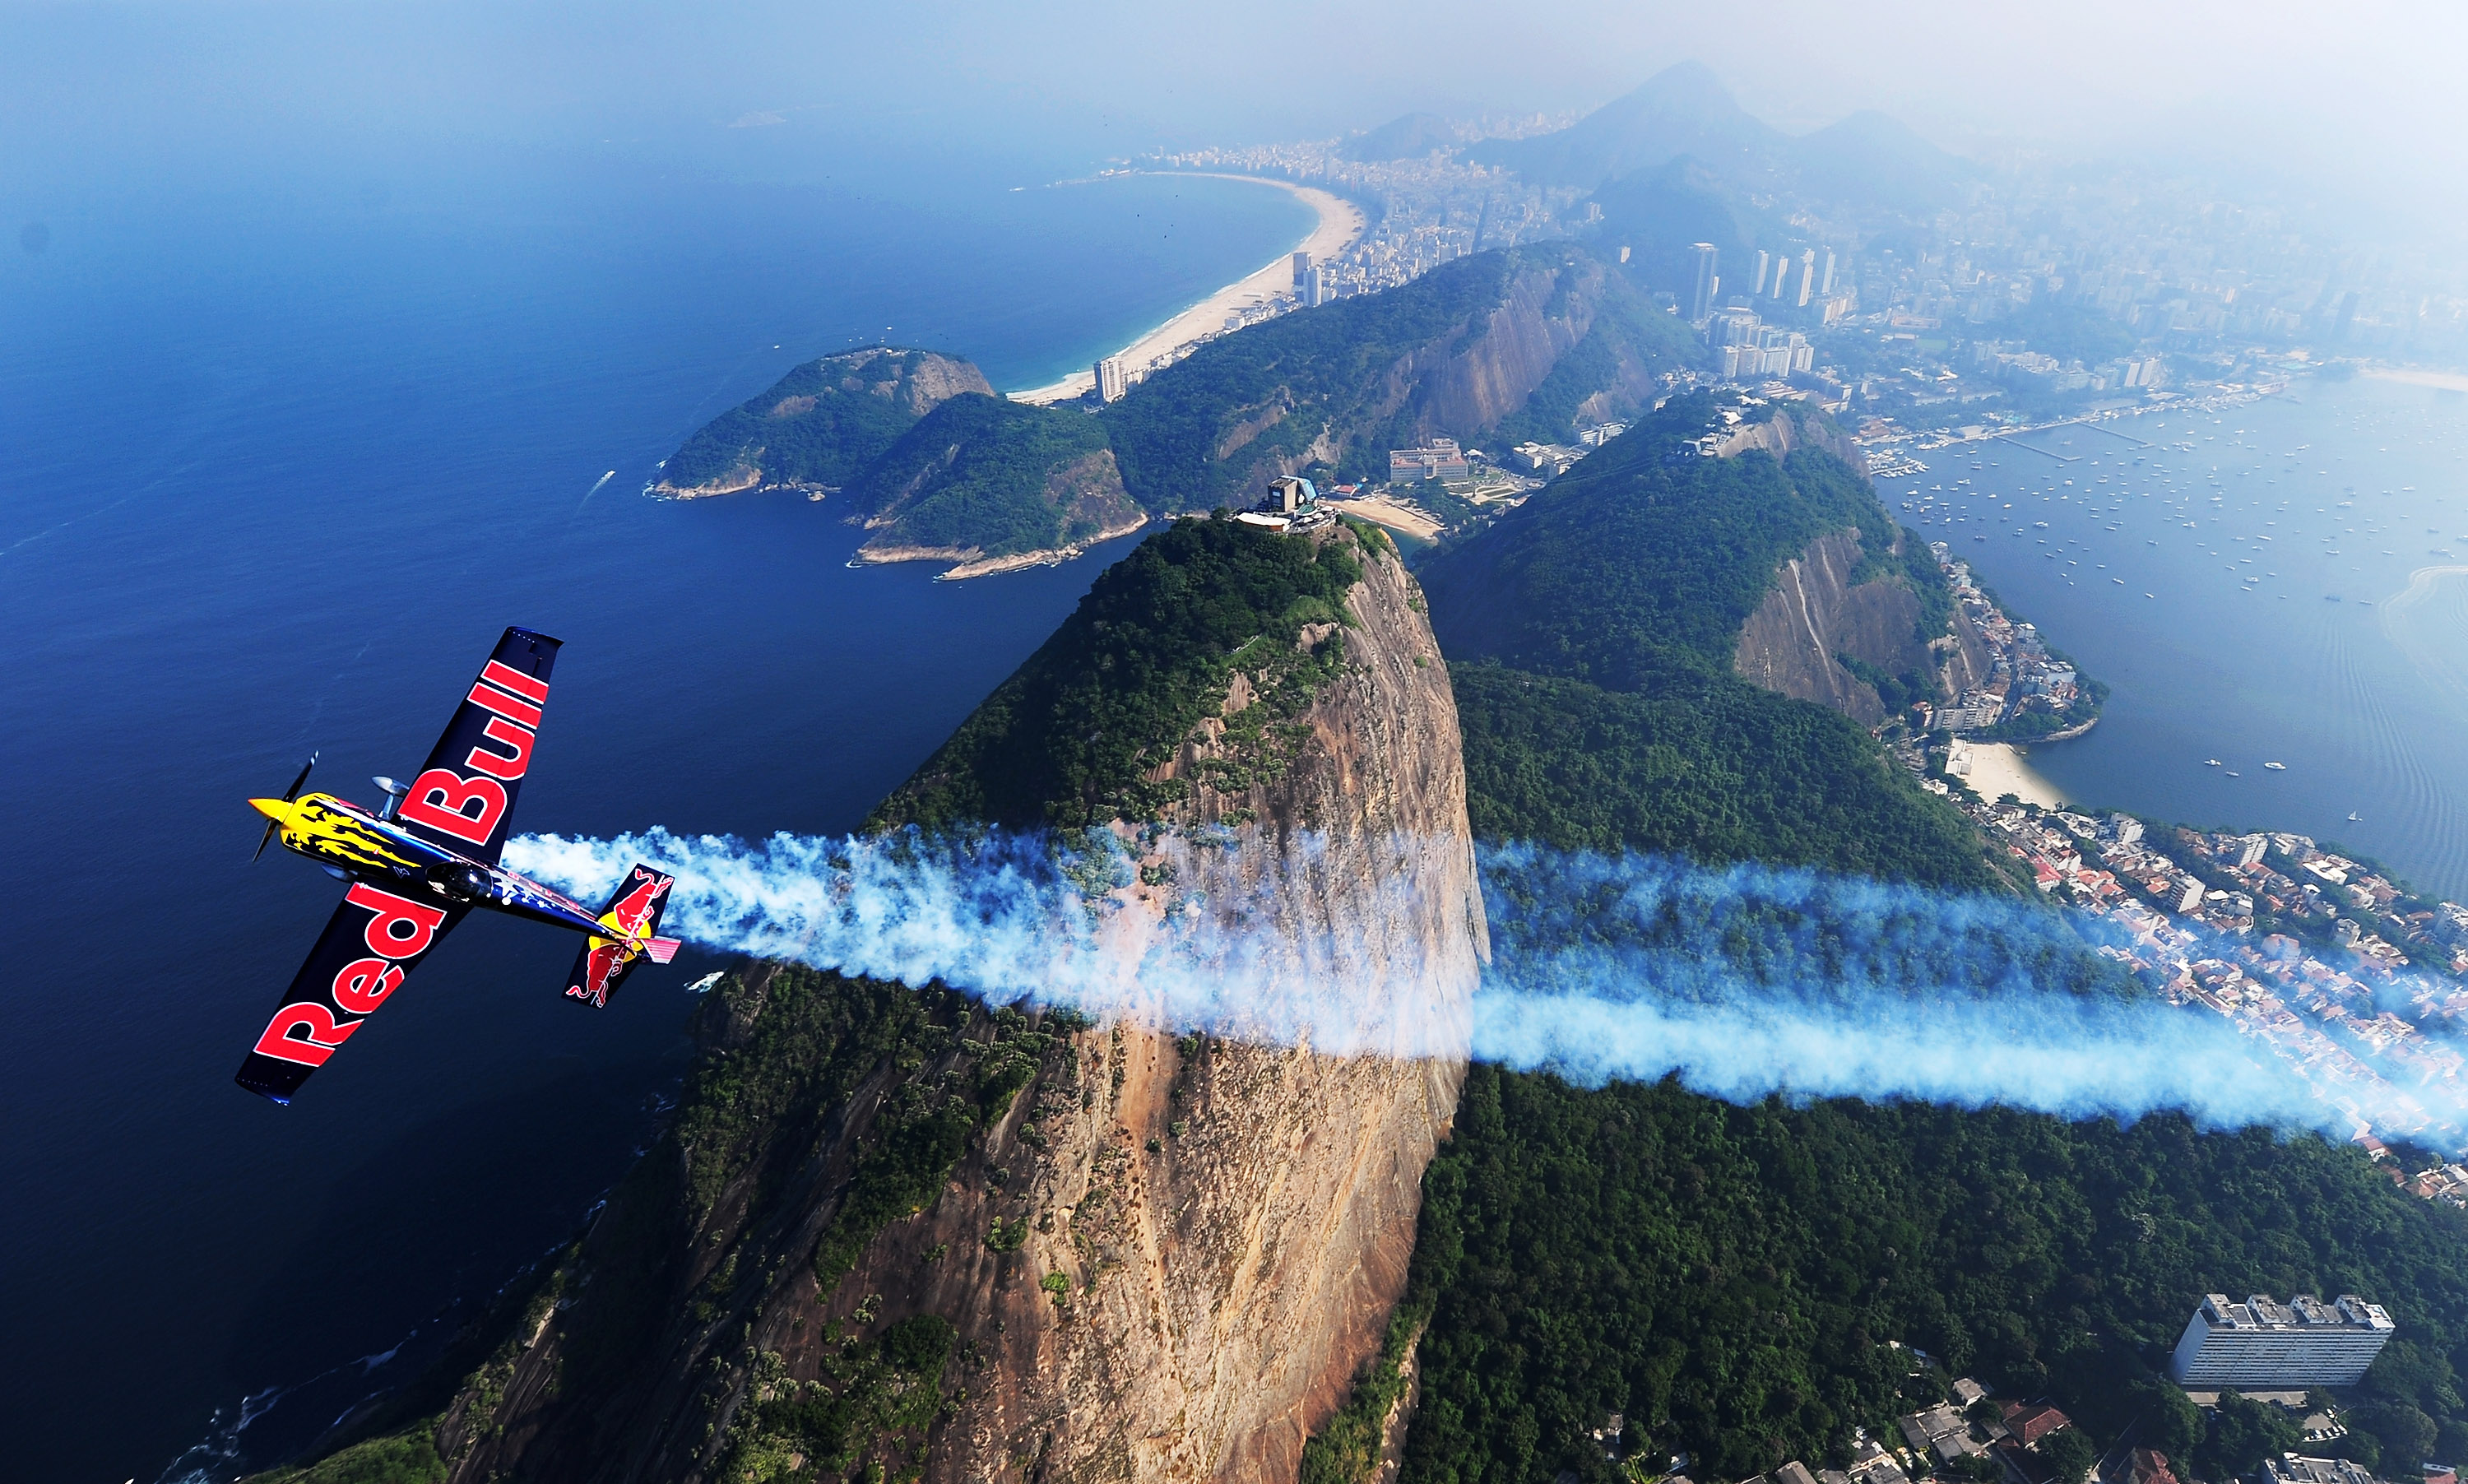 Aeroplans - Kirby Chambliss by Mike Hewitt / Getty Images for Red Bull Air Race